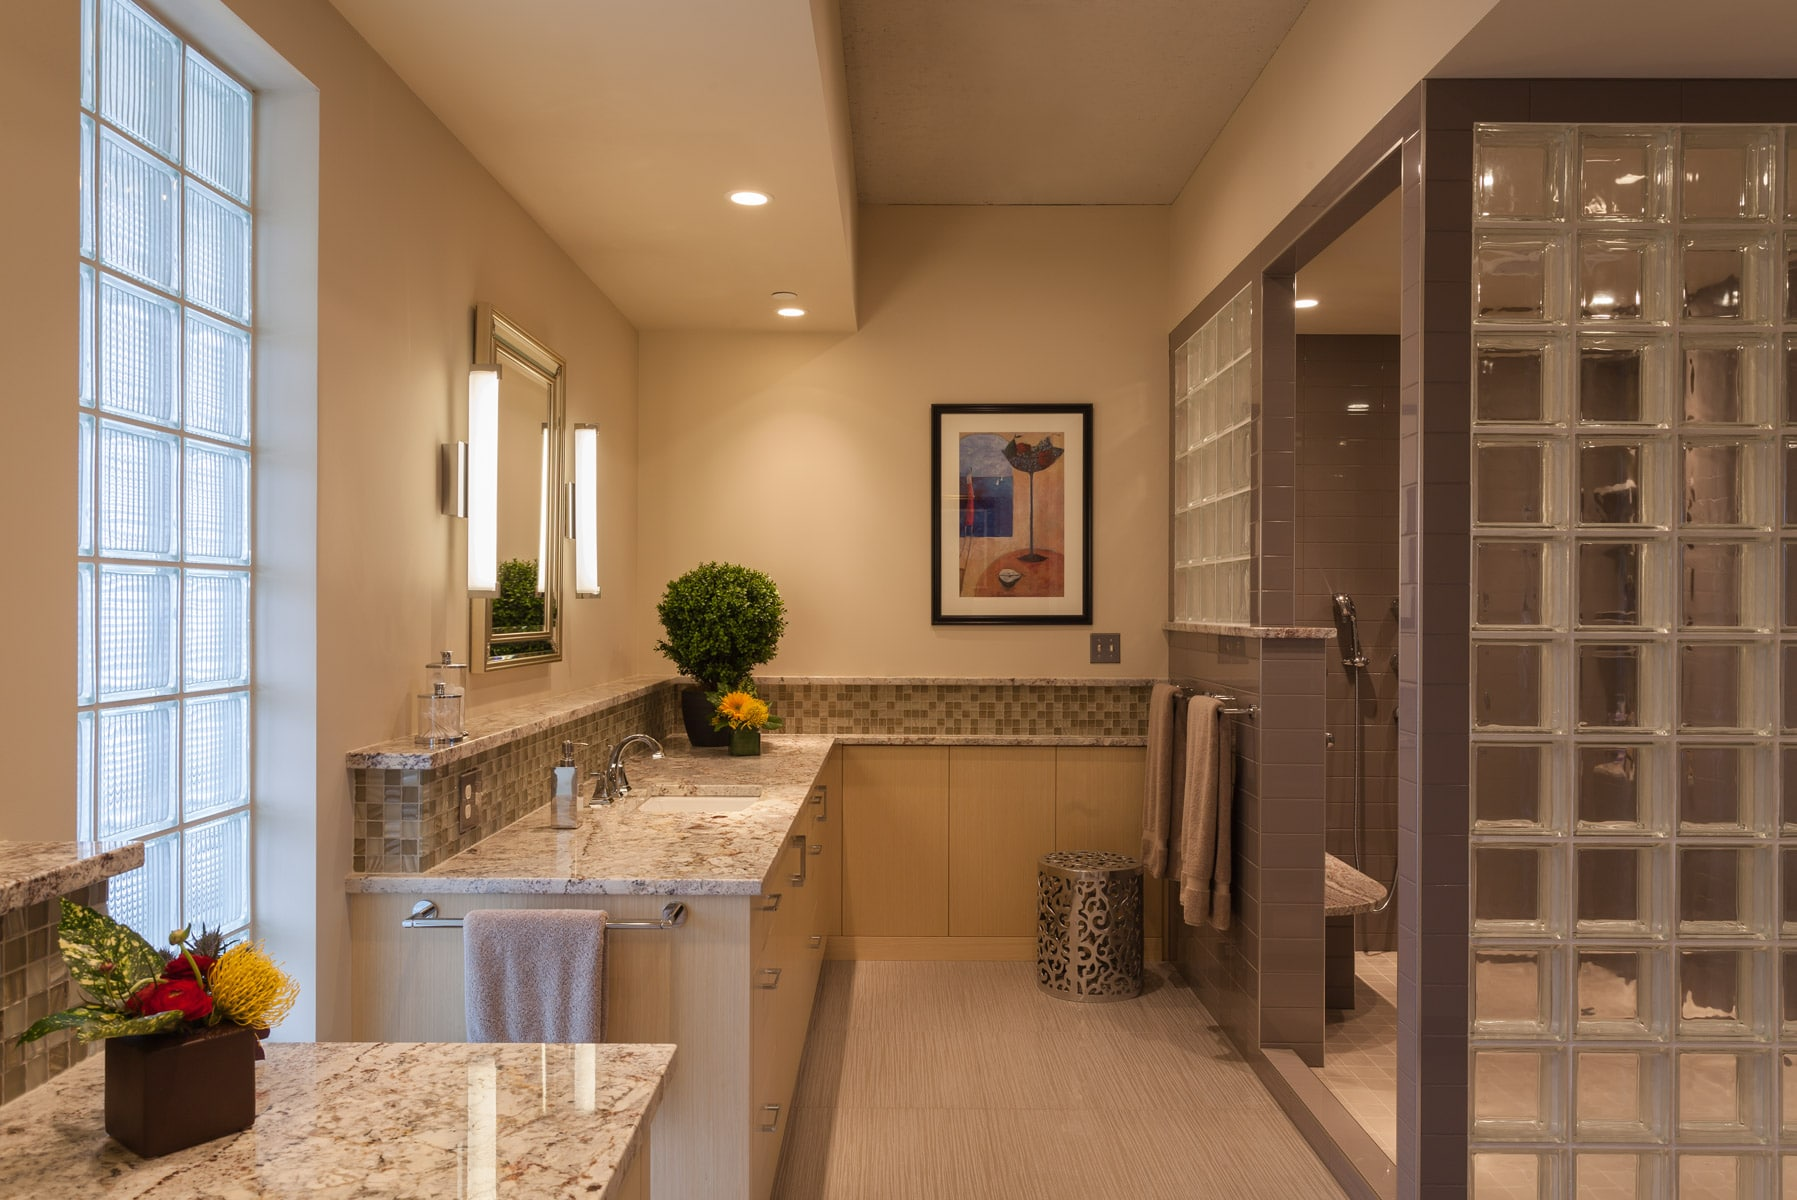 Distinctive penthouse master bath in neutral colors with glass block